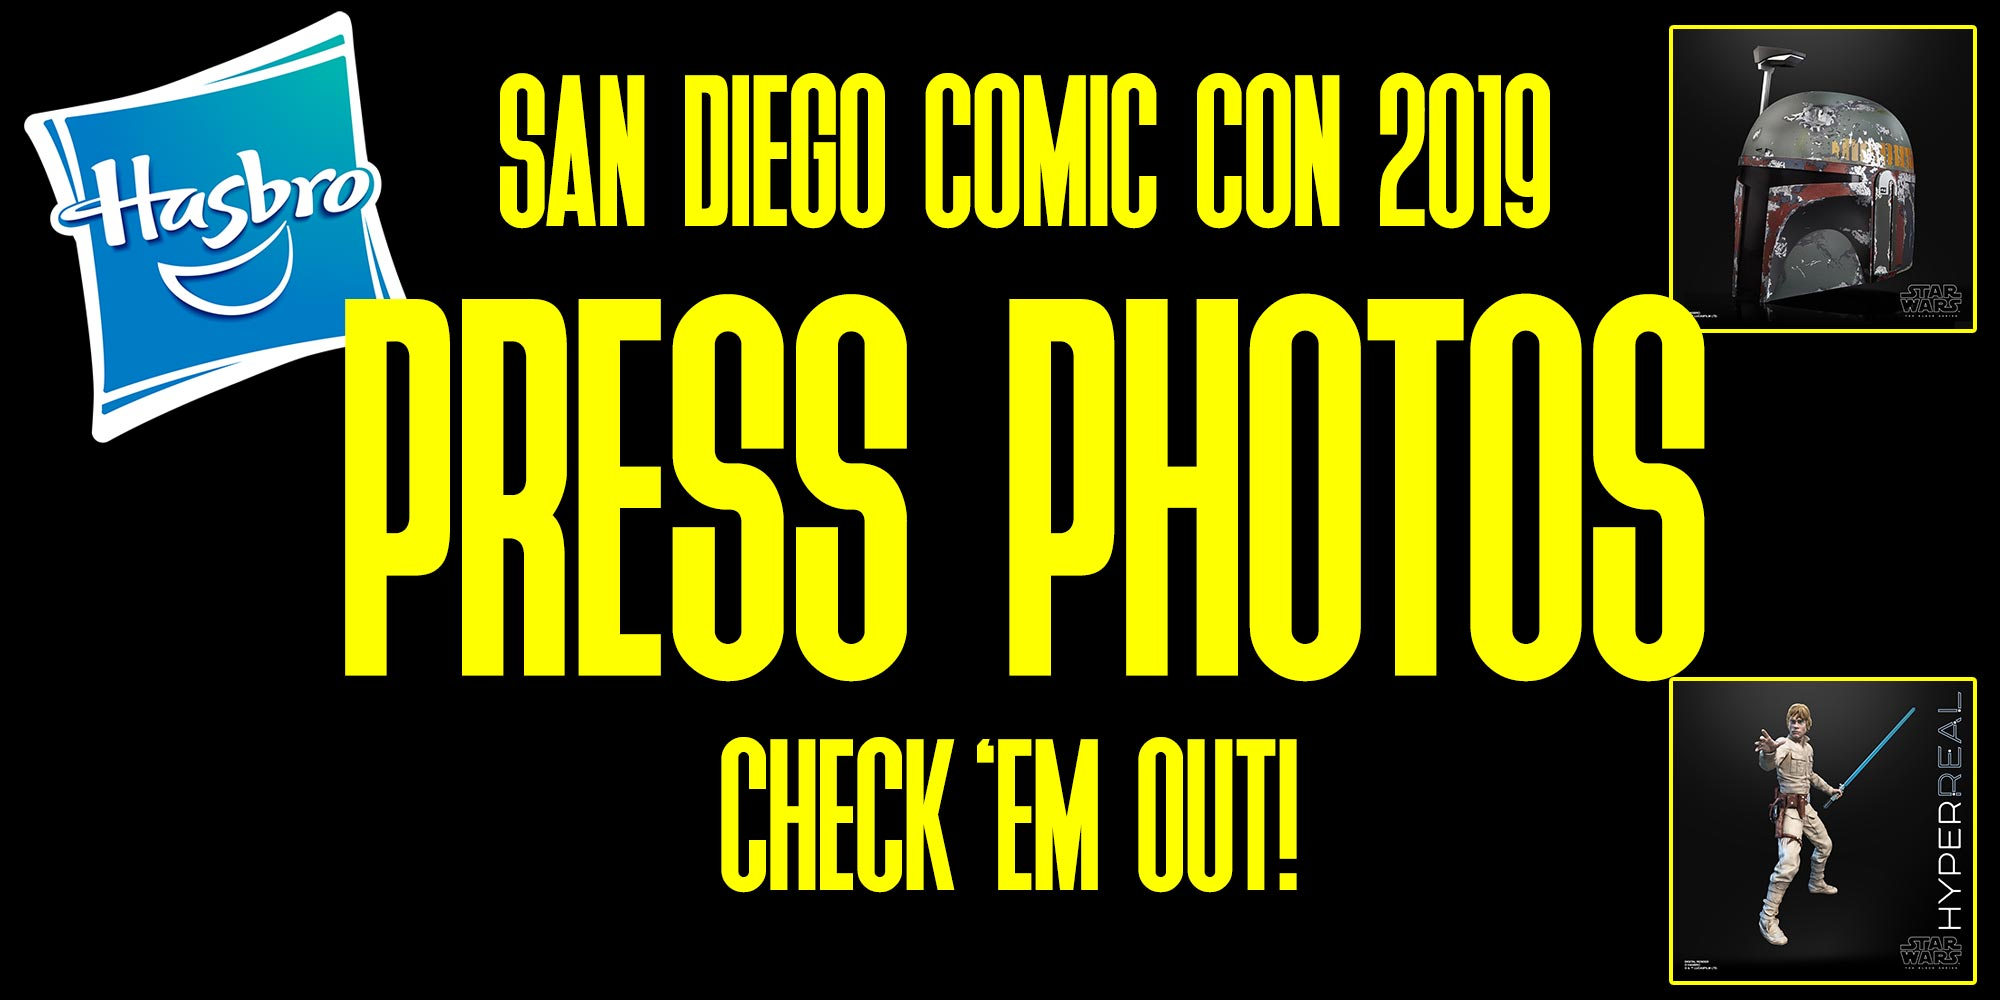 San Diego Comic Con 2019 Hasbro Press Photos